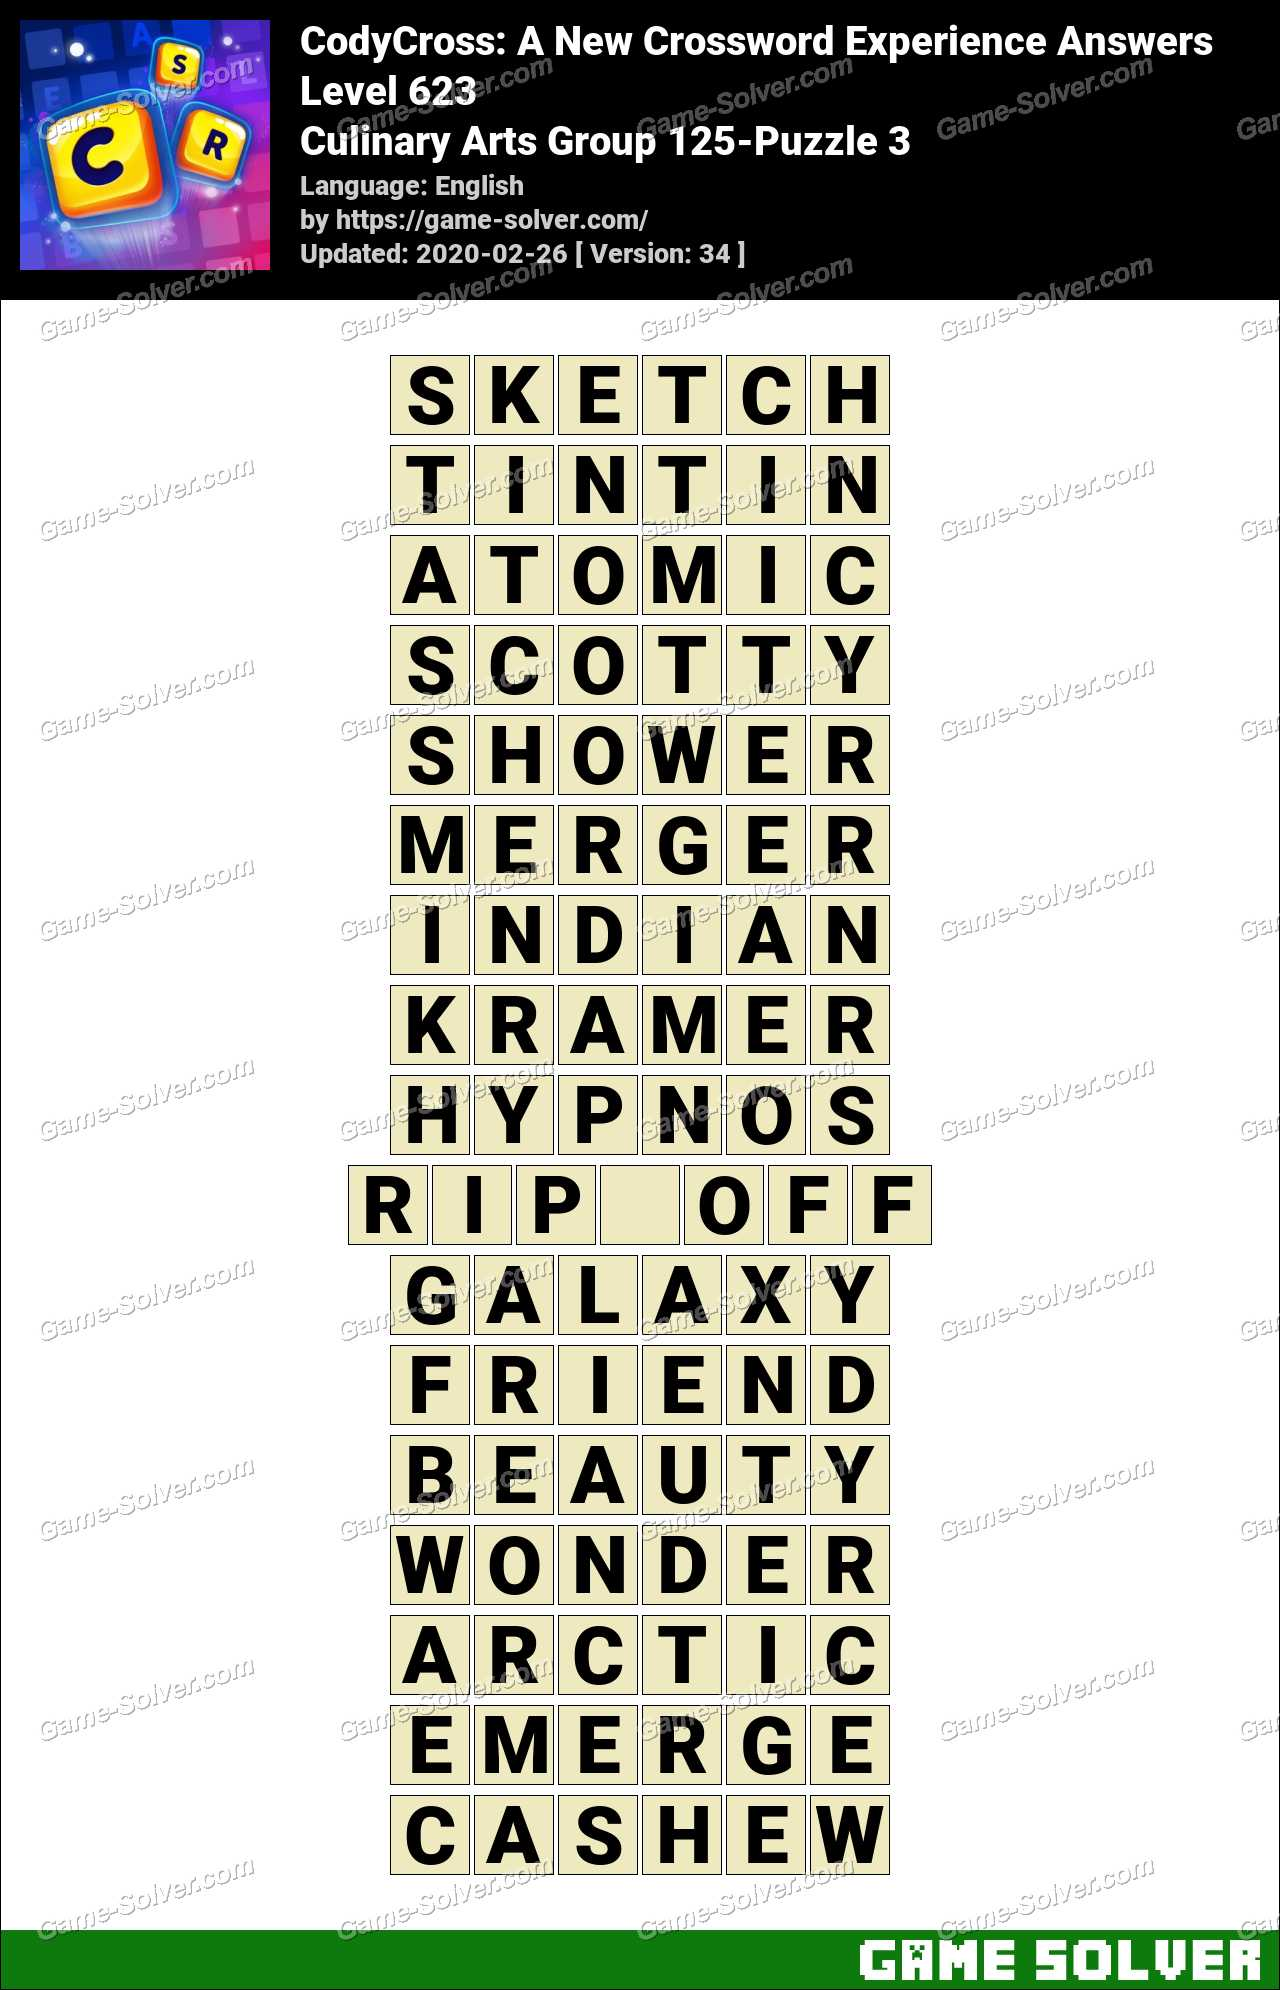 CodyCross Culinary Arts Group 125-Puzzle 3 Answers